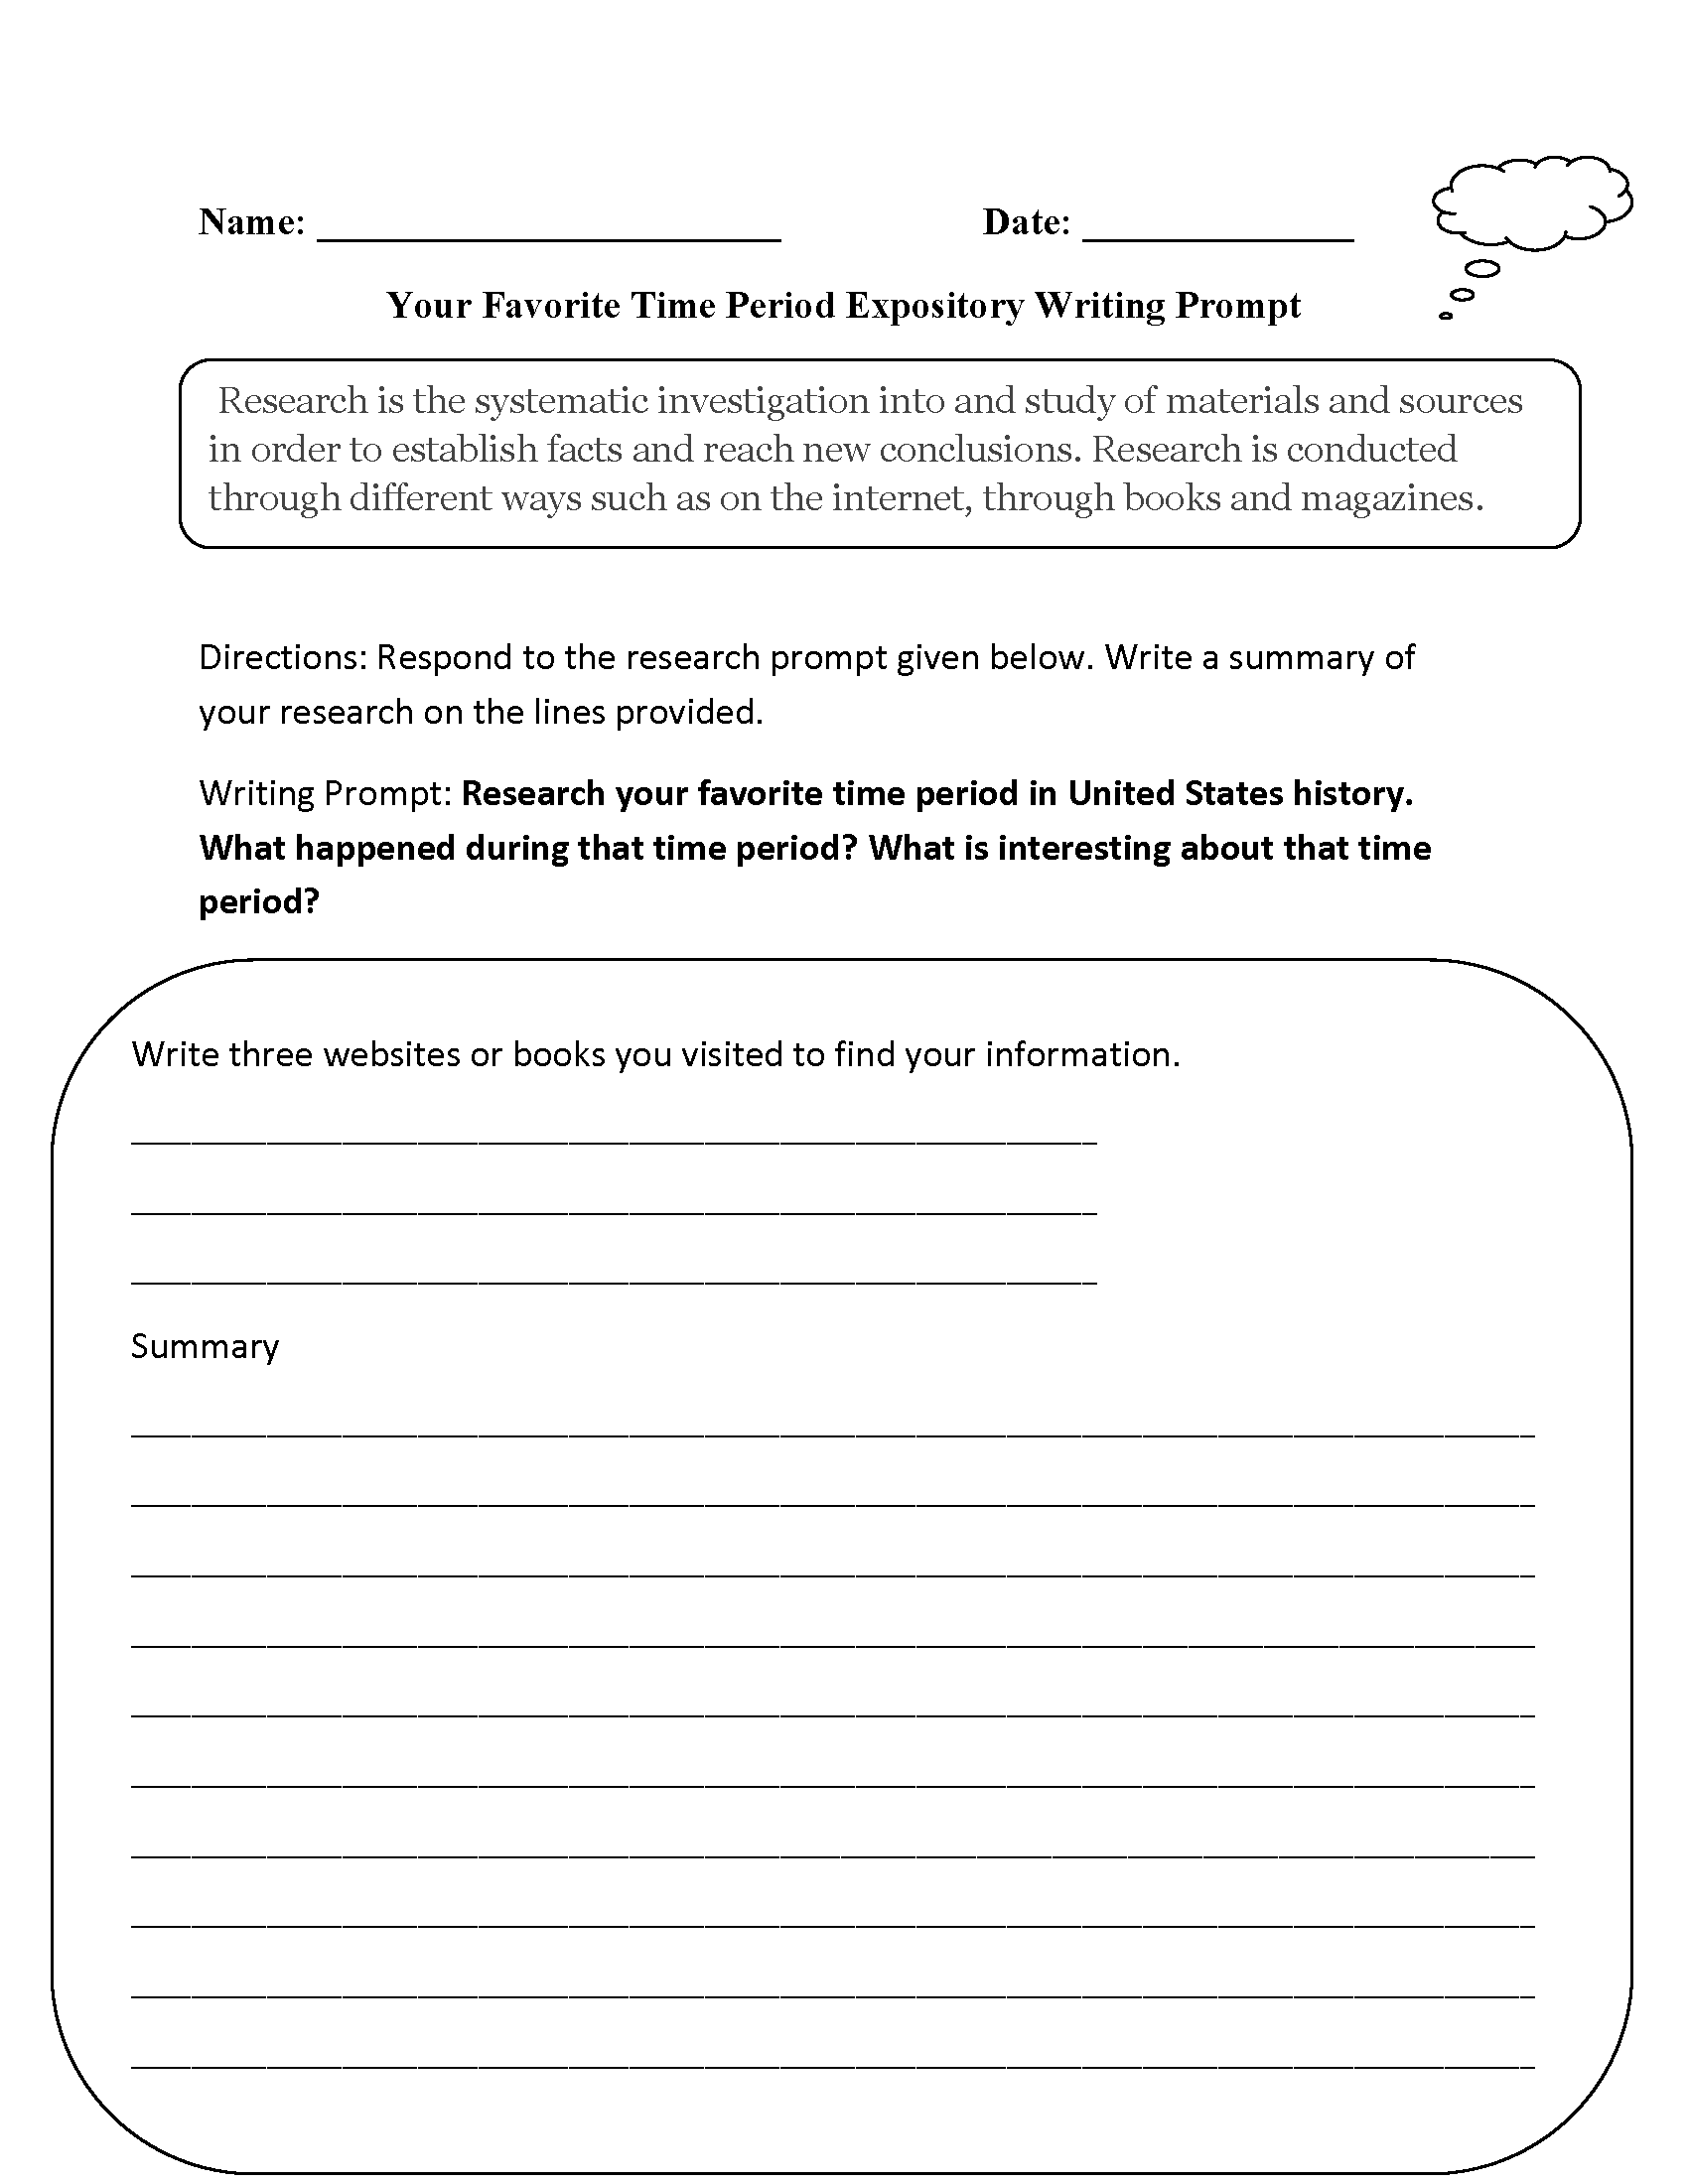 Worksheets 3rd Grade Writing Prompts Worksheets writing prompts worksheets informative and expository prompt worksheet